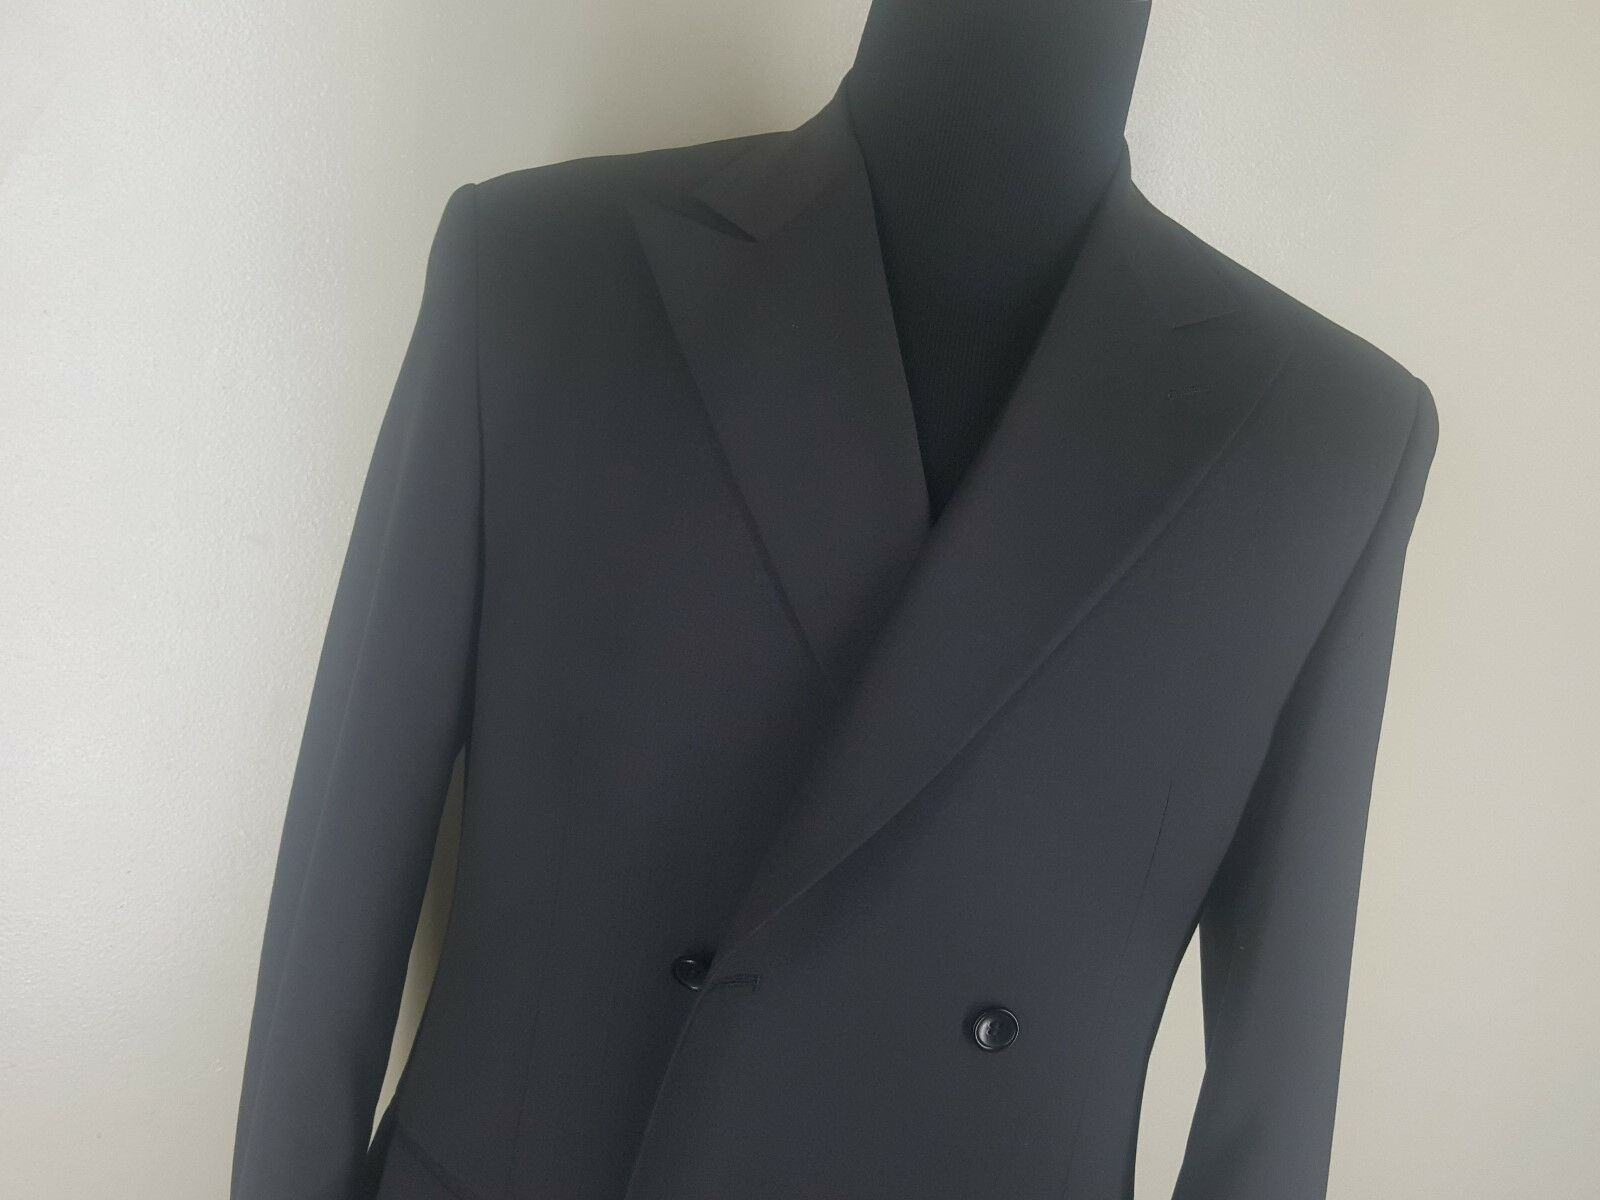 G'ART Recent Made In  Double Breasted Pure Wool Blazer  38R-Fit  38-40 Reg